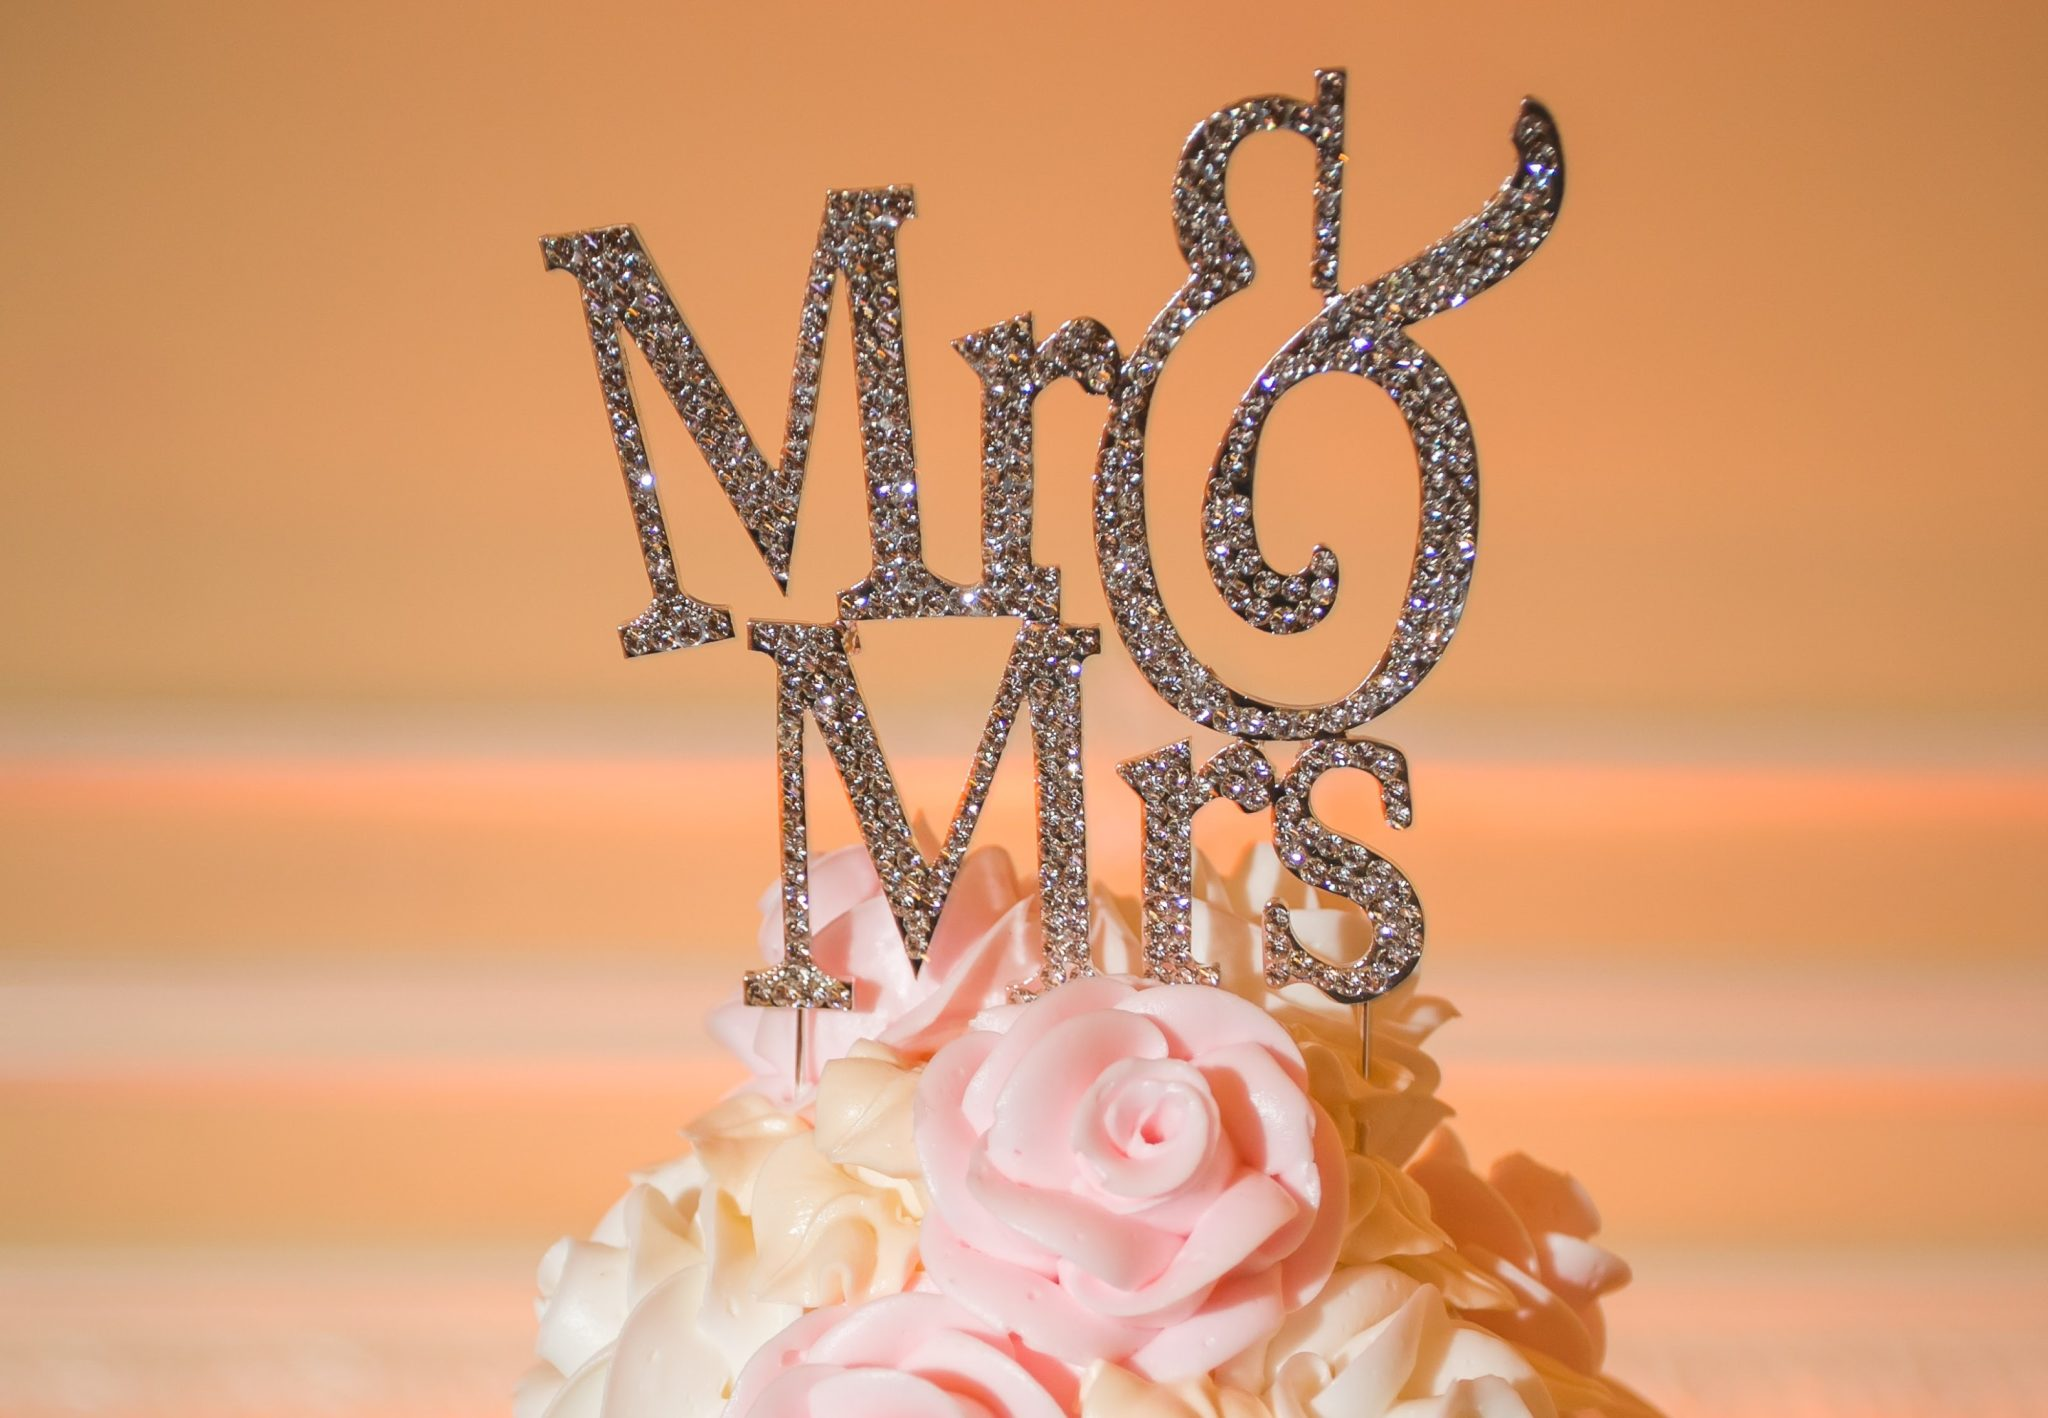 5 Must-Have Wedding Cake Toppers